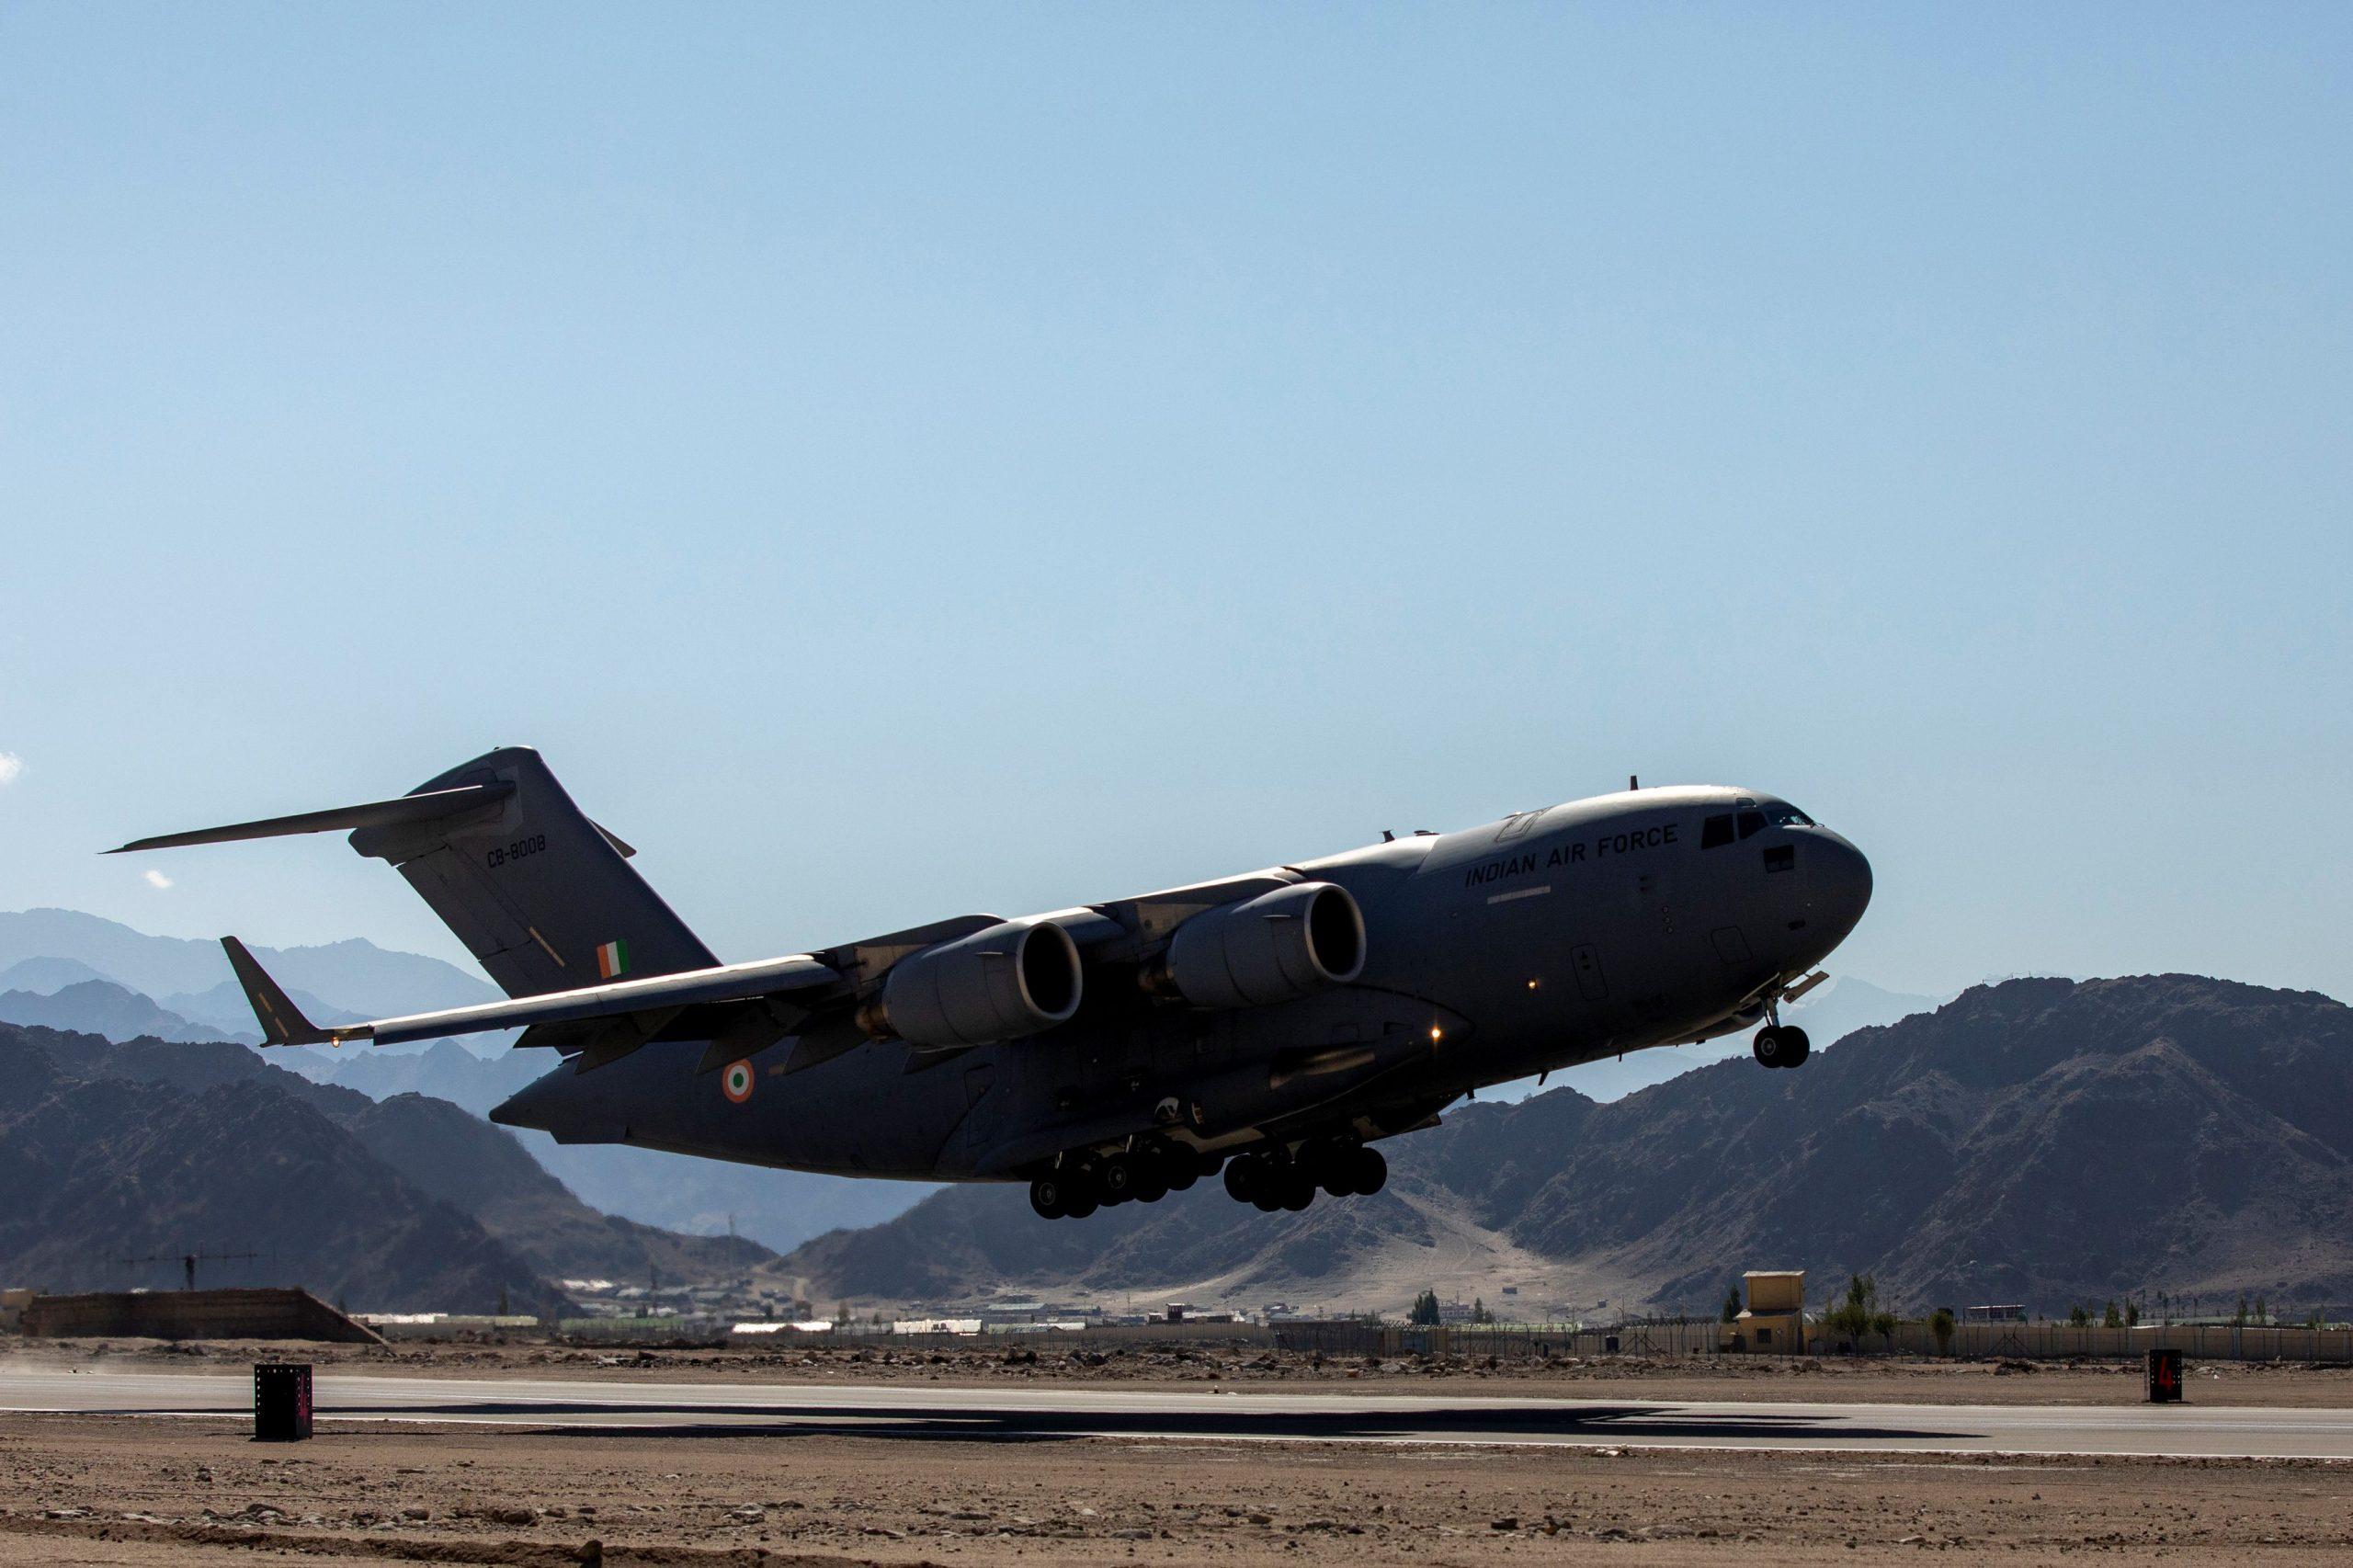 An Indian Air Force's (IAF) C-17 Globemaster transport plane take off from a forward airbase in Leh, in the Ladakh region, September 15, 2020. (REUTERS/Danish Siddiqui)